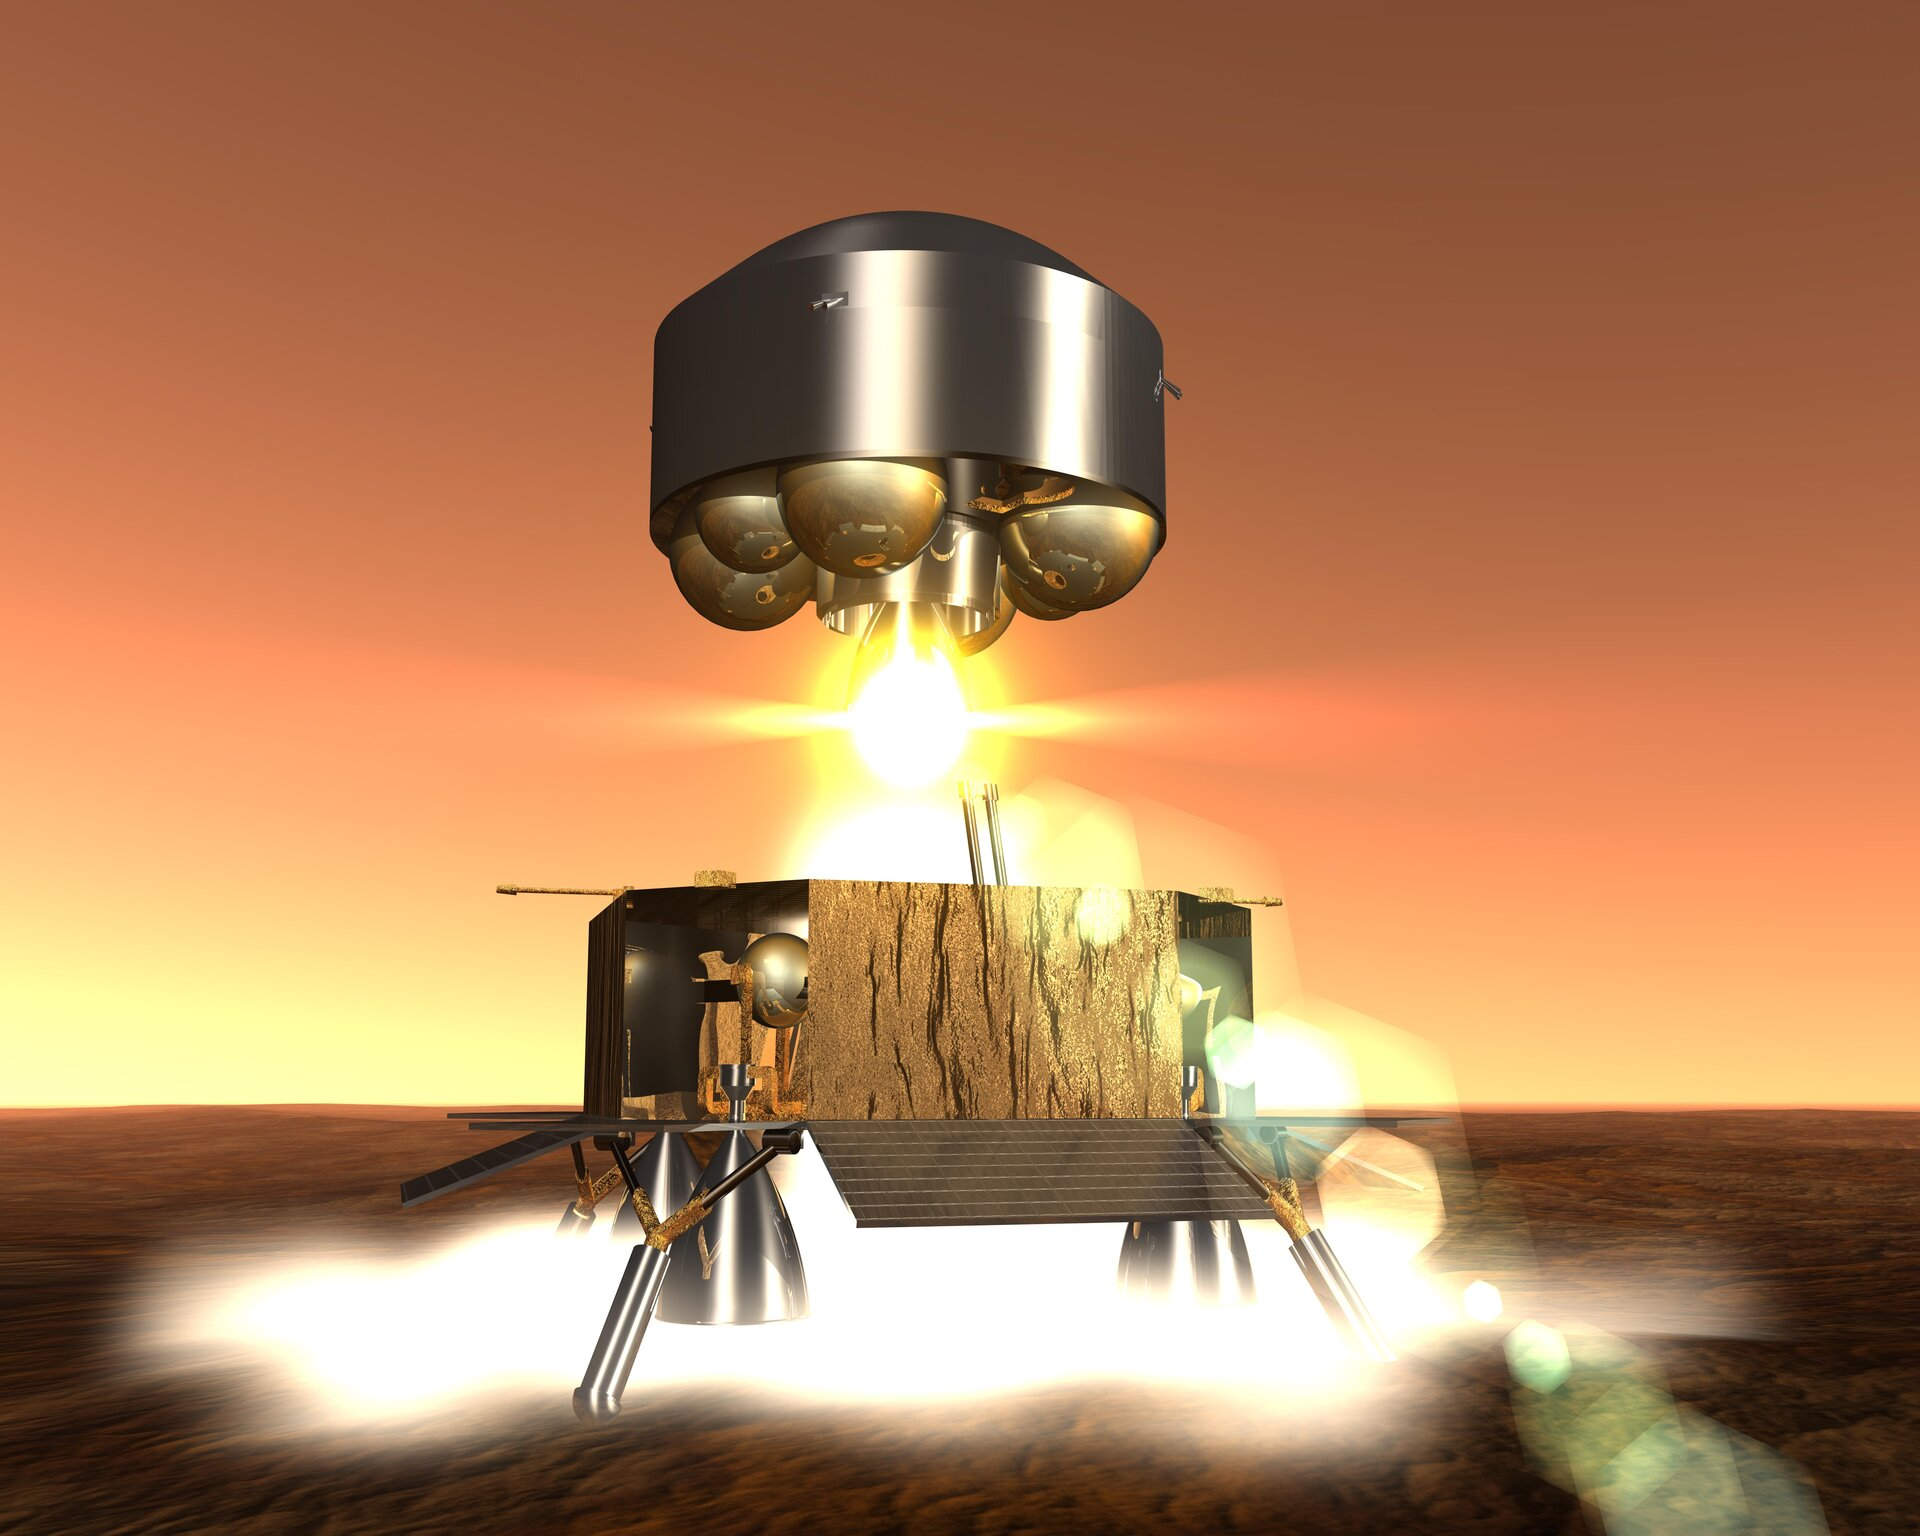 Artist's view of the Mars Sample Return ascent module lifting off from Mars